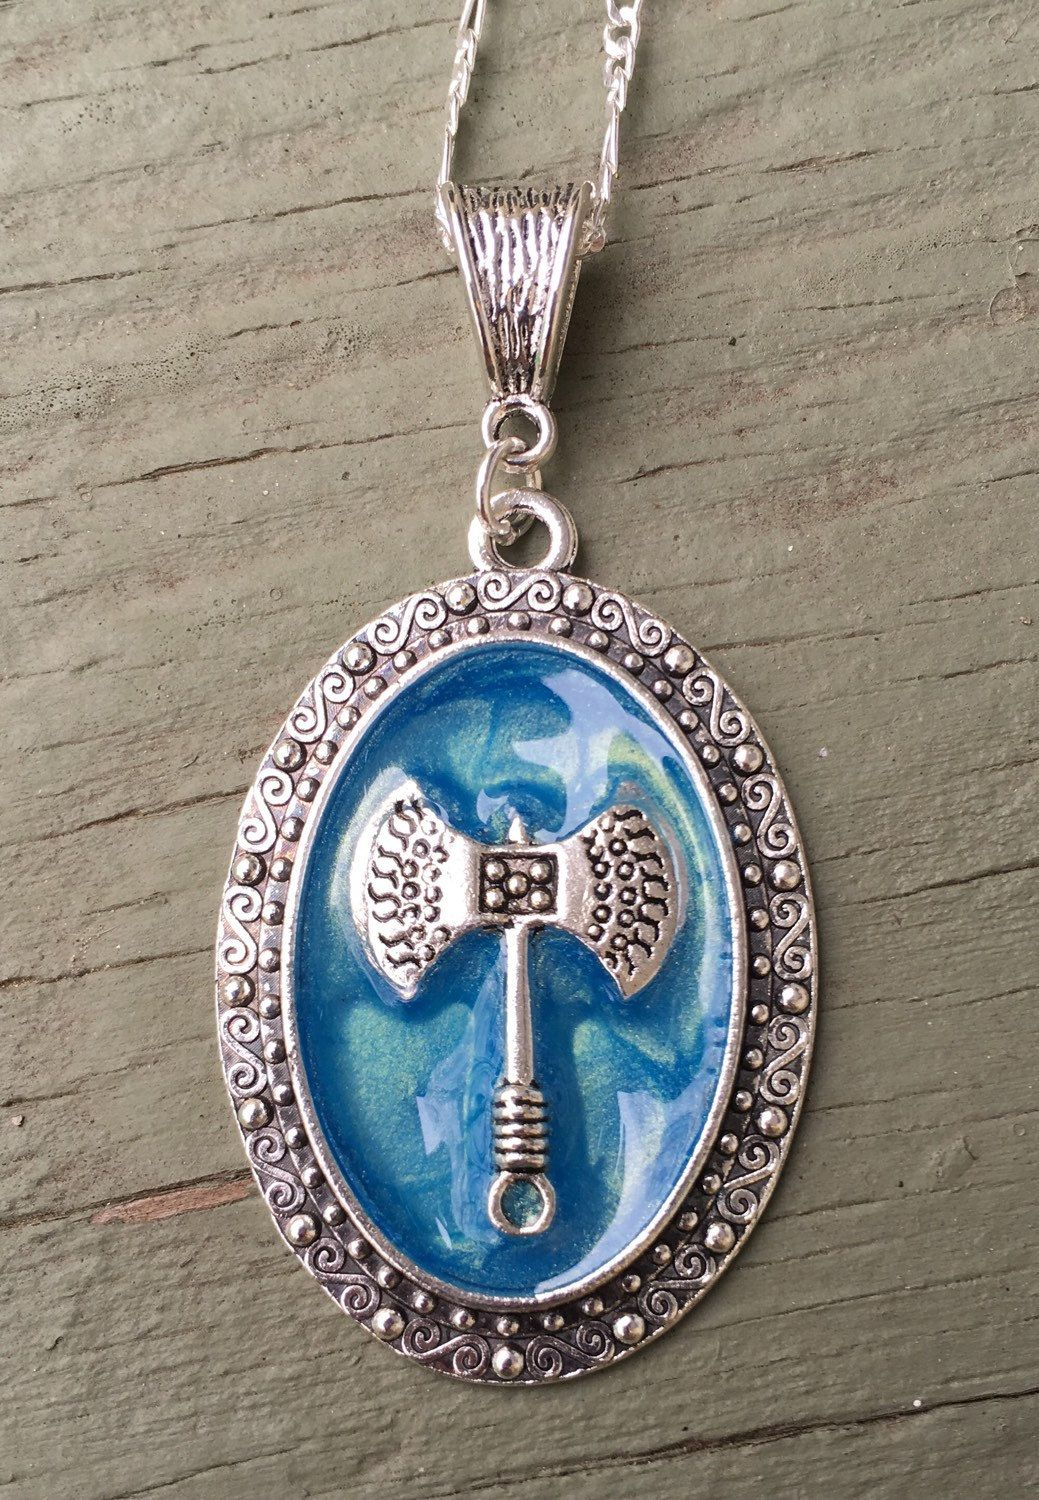 Double axe labrys oval enameled aqua blue pendant on 18 925 double axe labrys oval enameled aqua blue pendant on 18 925 sterling silver herringbone necklace symbol of strength hand crafted in the u buycottarizona Gallery